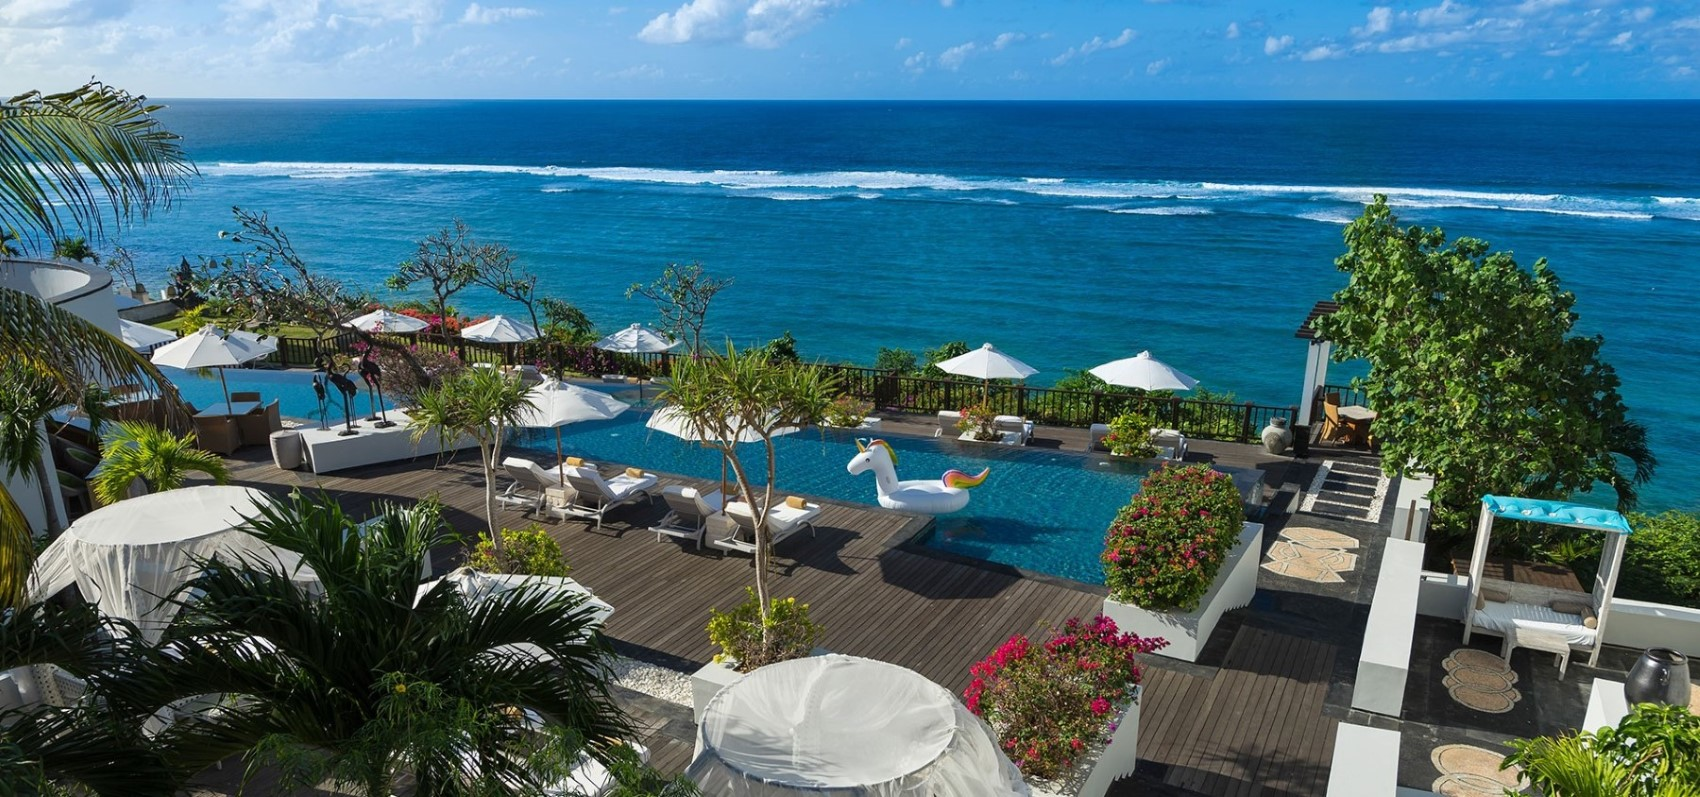 A Luxury All-Inclusive Bali Resort to Enjoy an Elevated Level of Pampering!